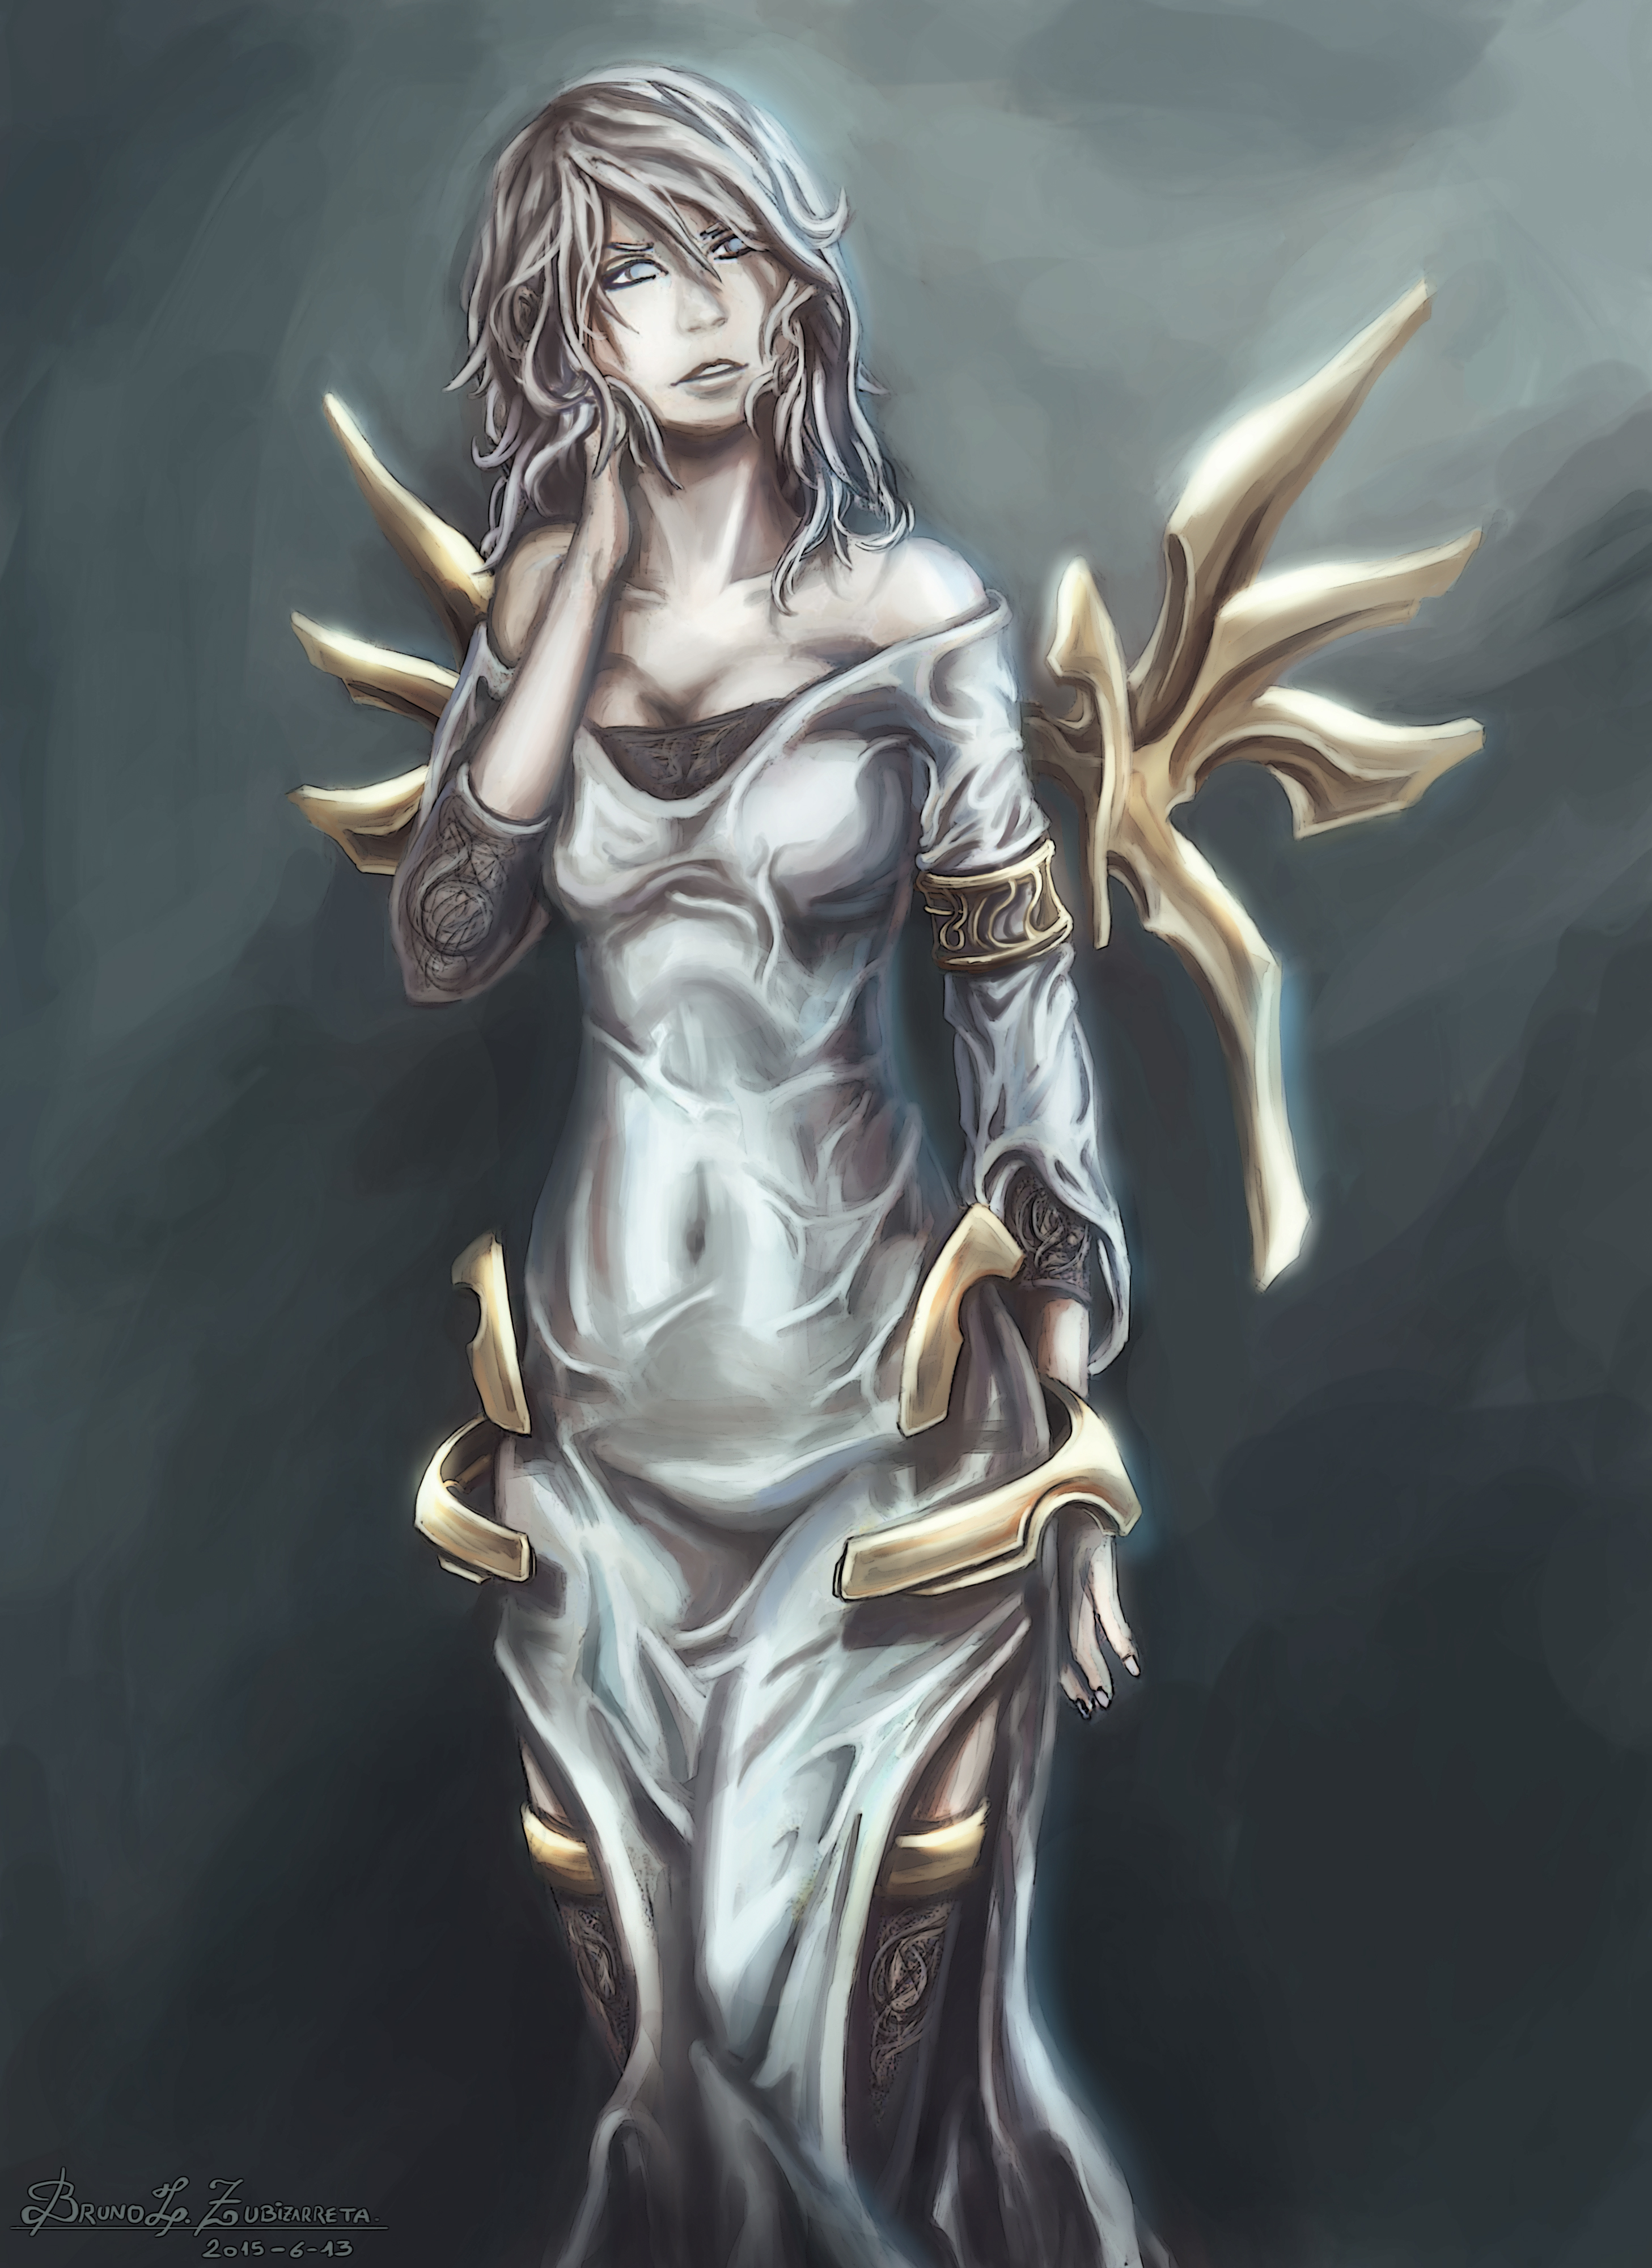 dress and armor